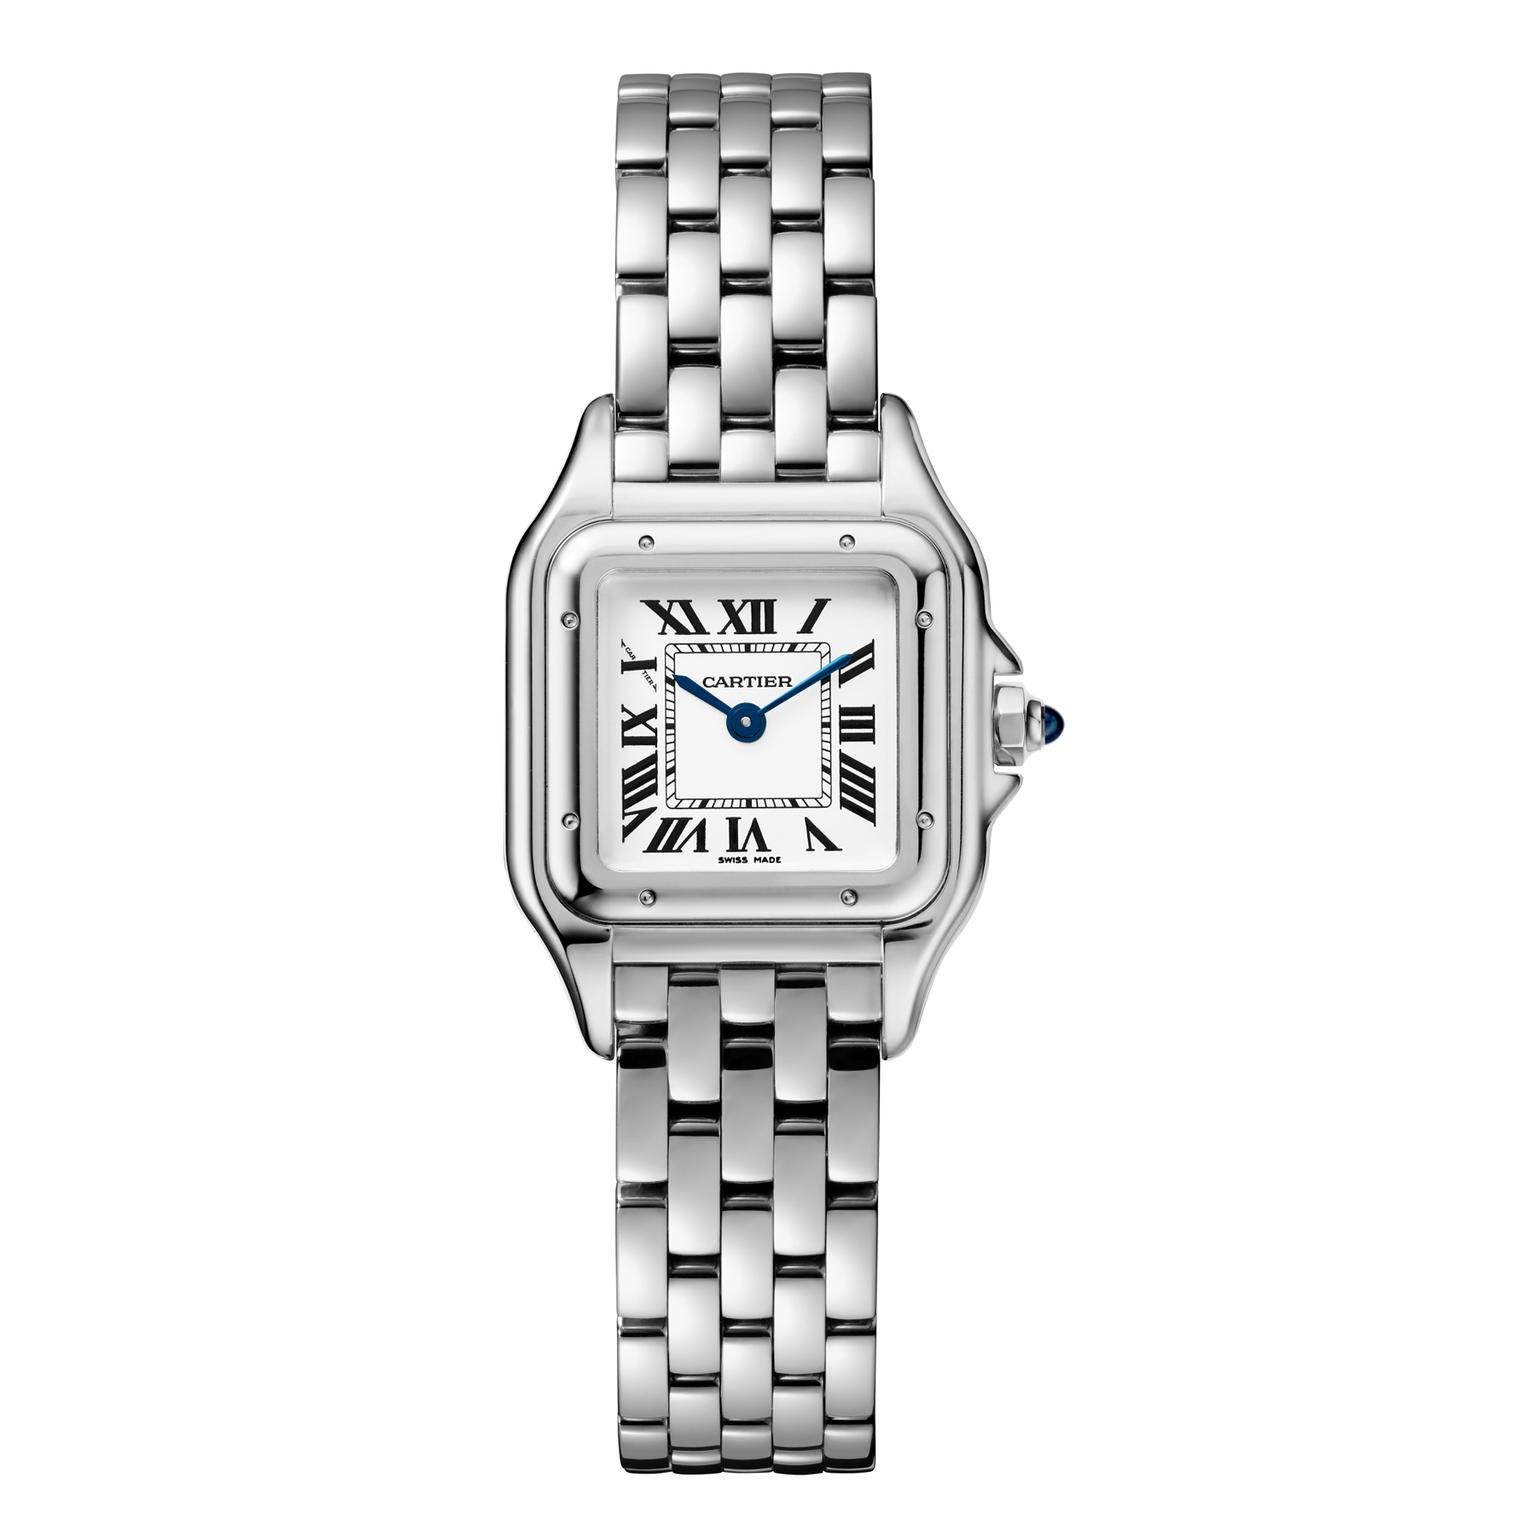 Small size Panthère de Cartier watch in stainless steel